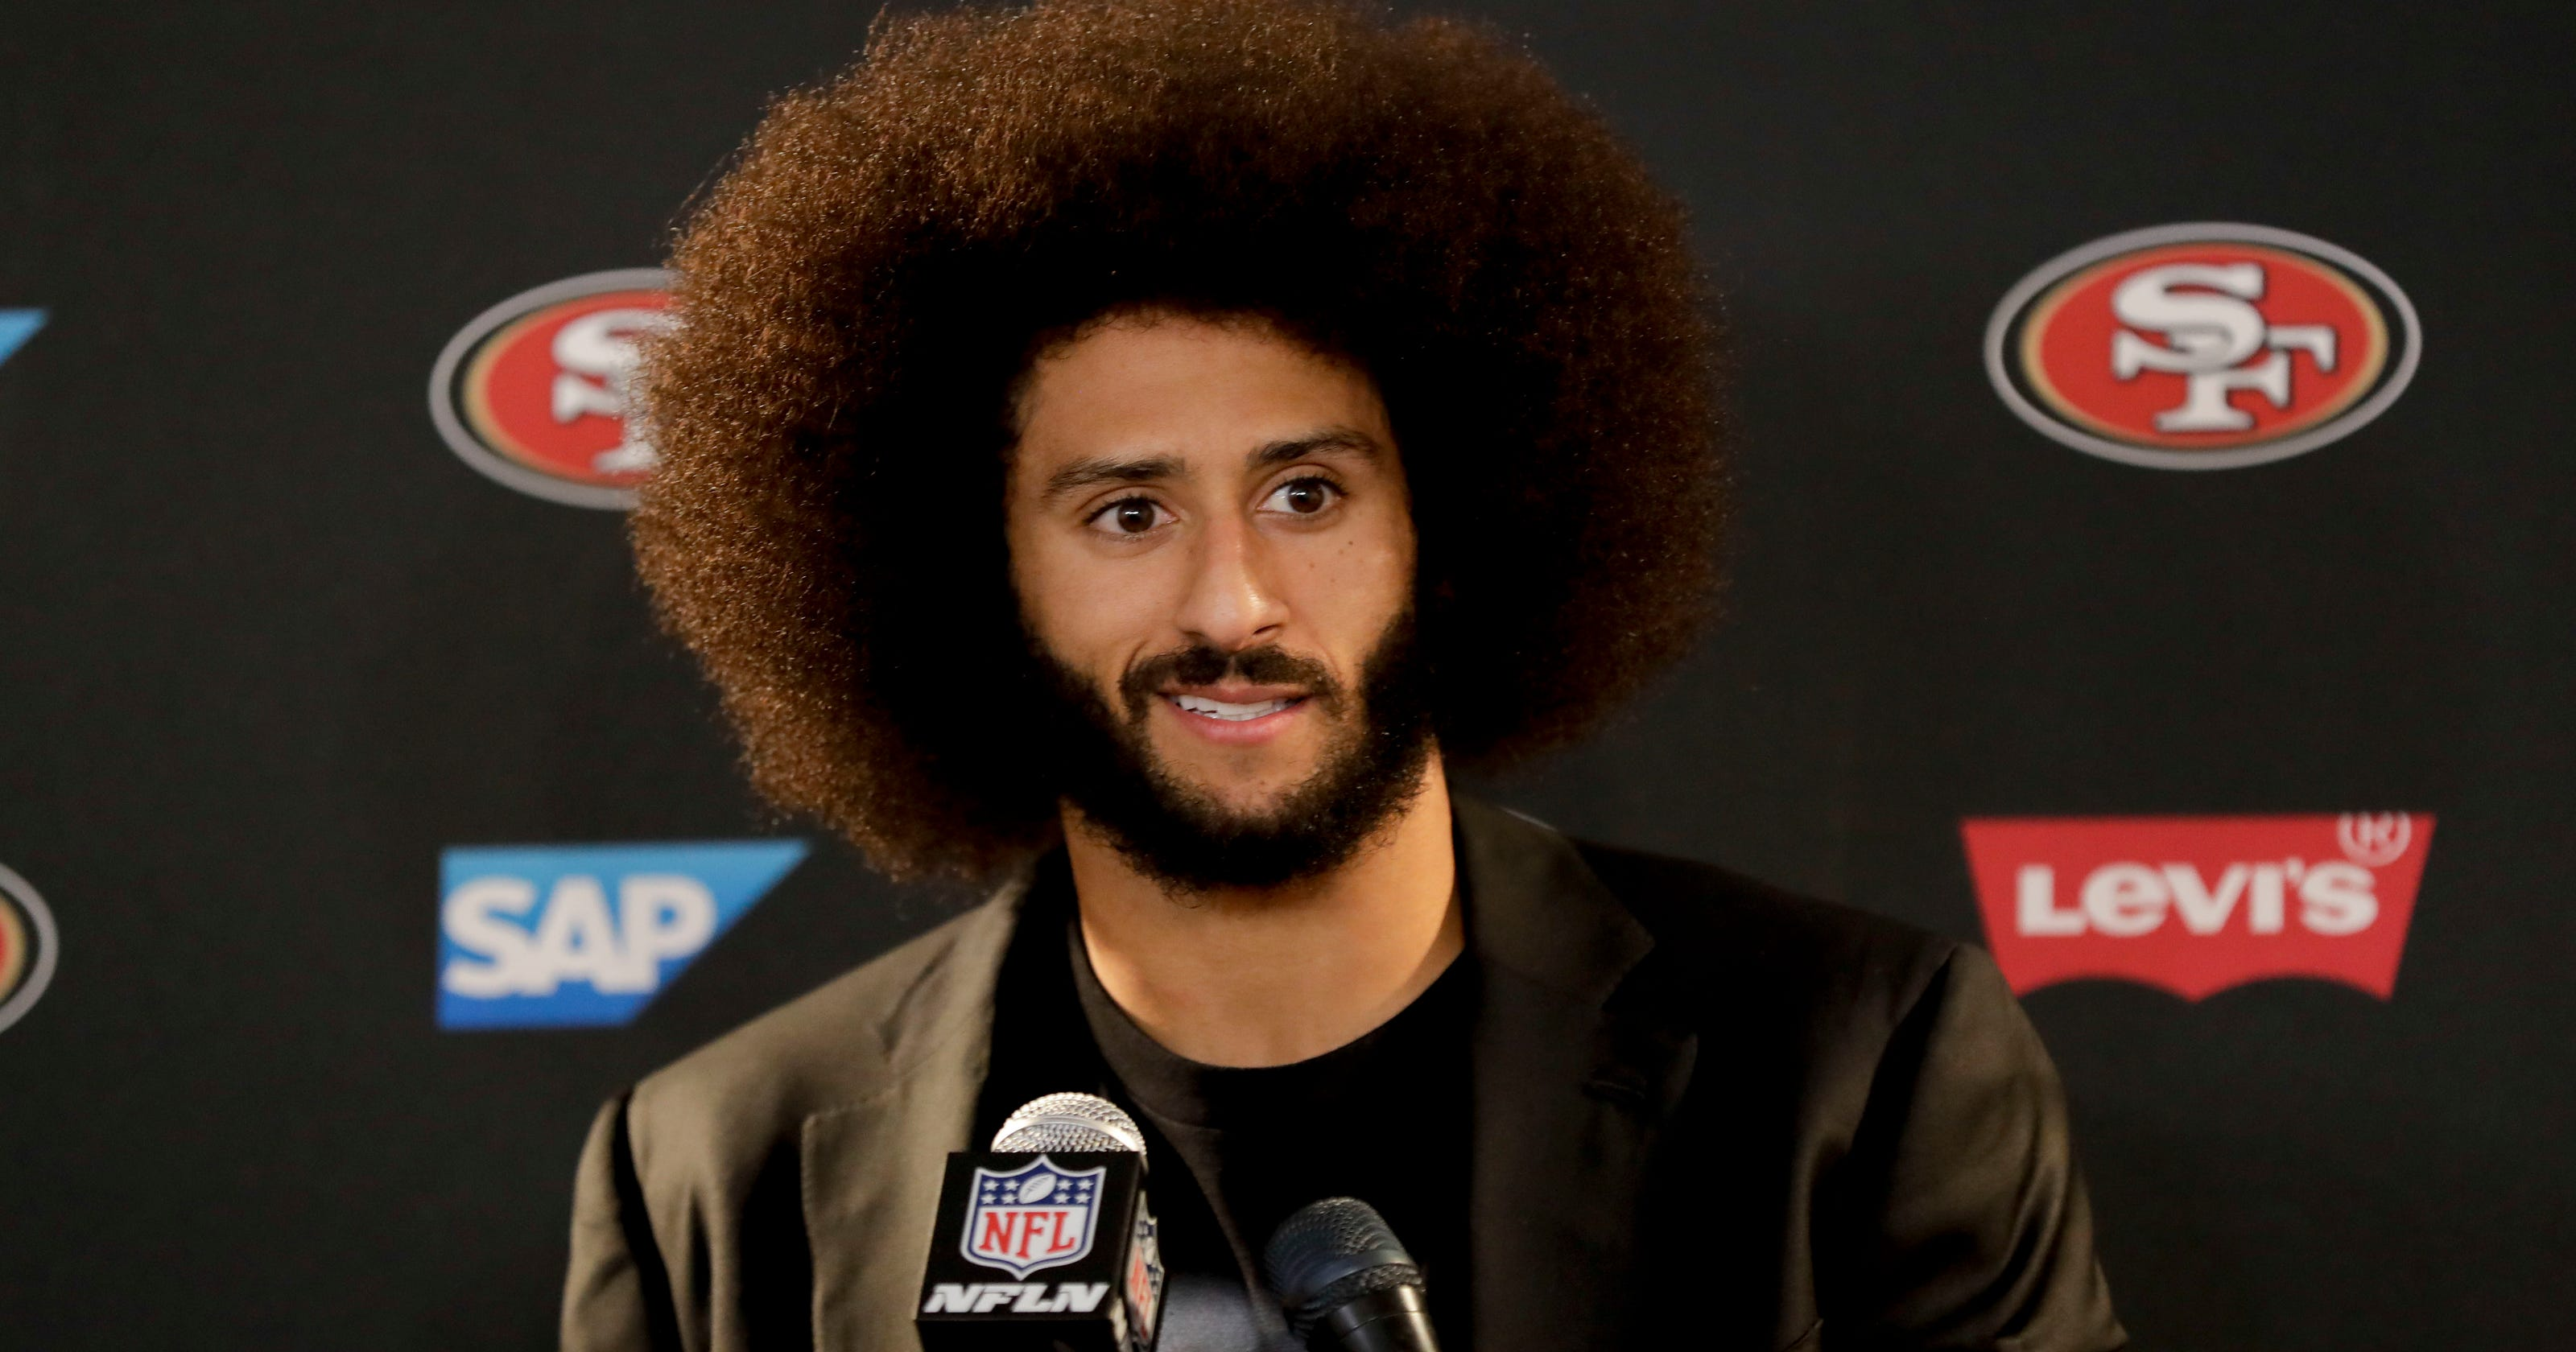 02acf25aa Questions and answers about Colin Kaepernick s grievance